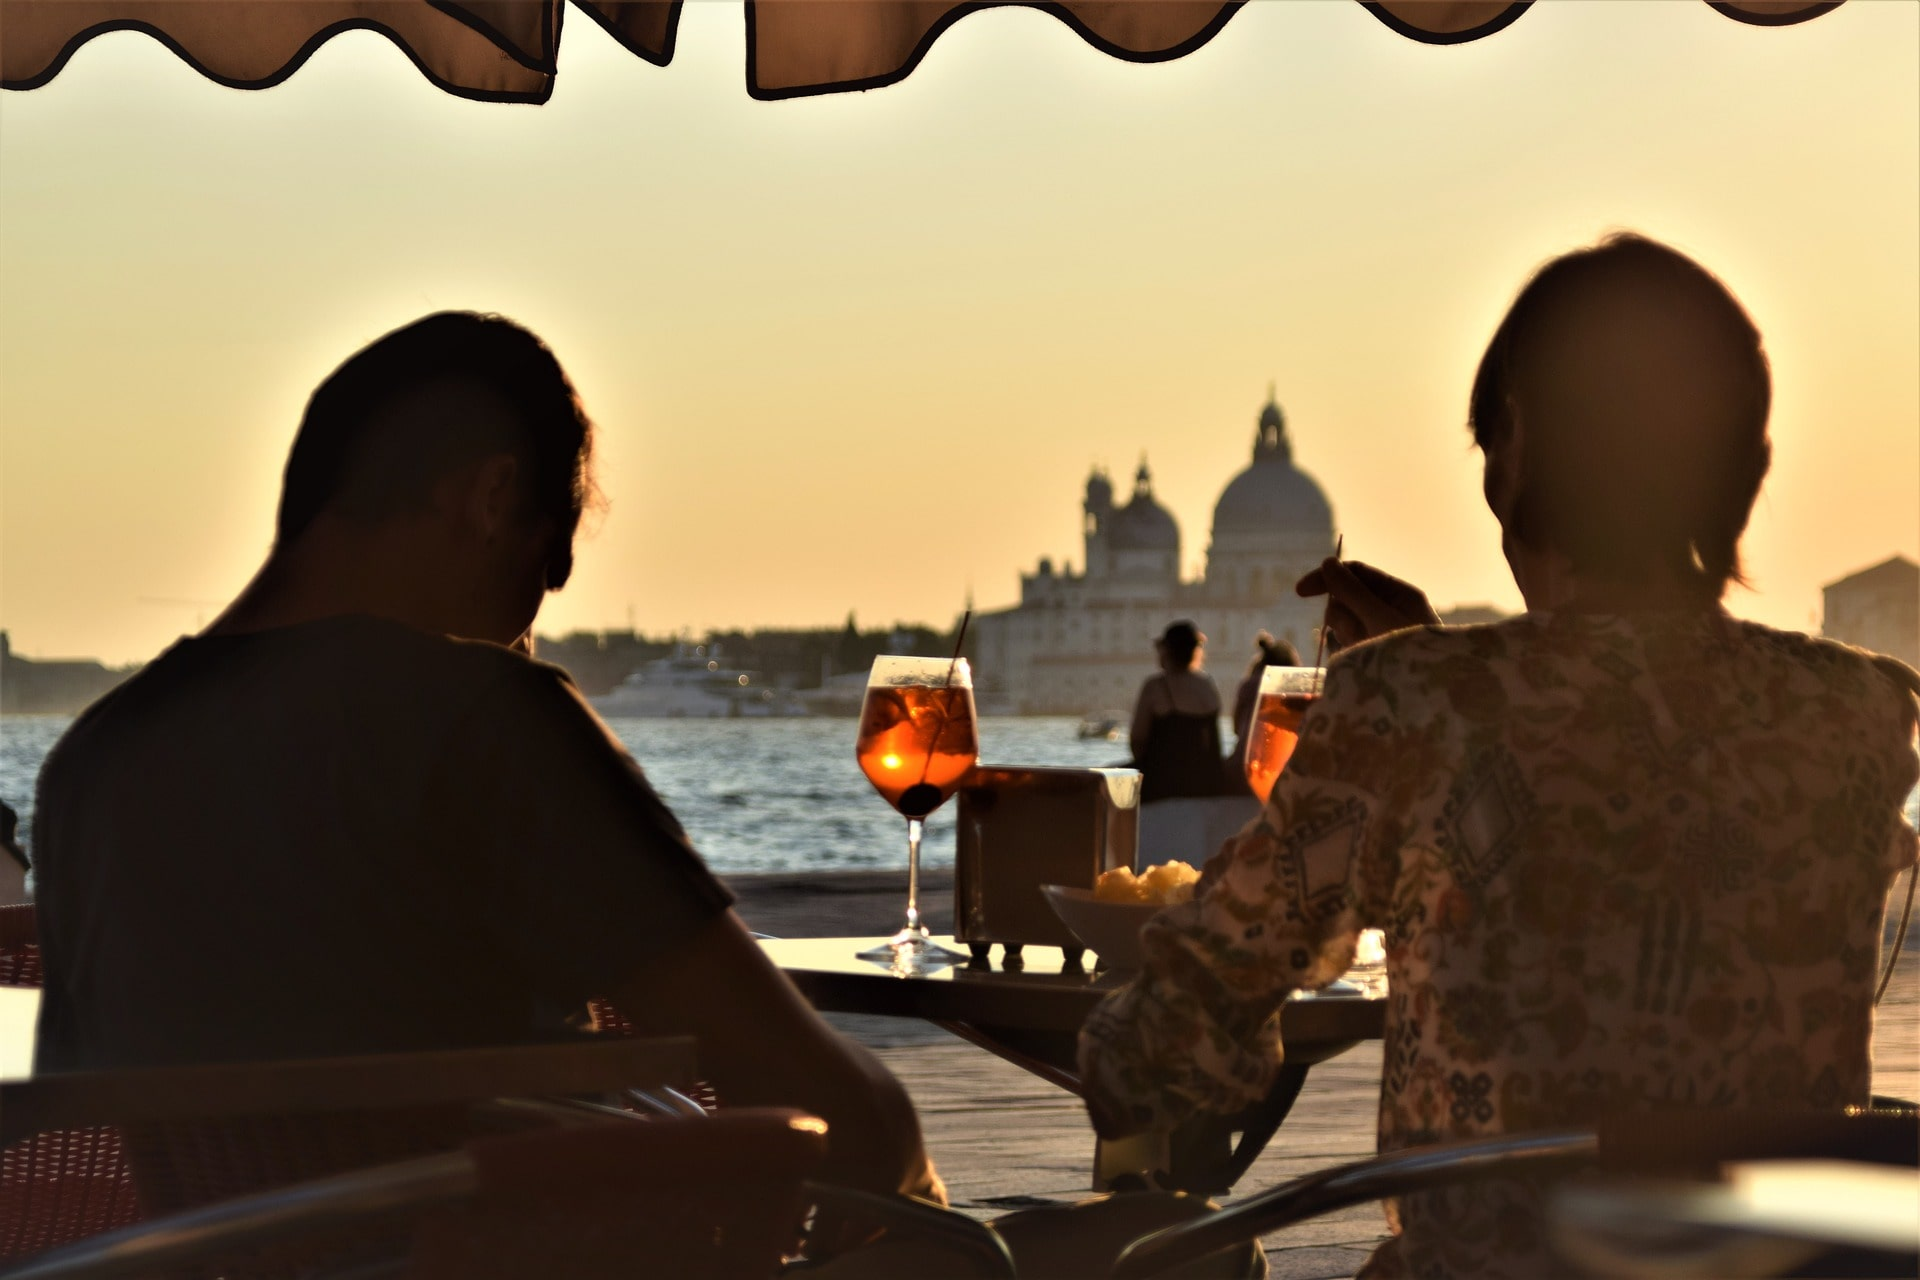 Indulging in Aperol Spritz is a fun thing to do in Italy